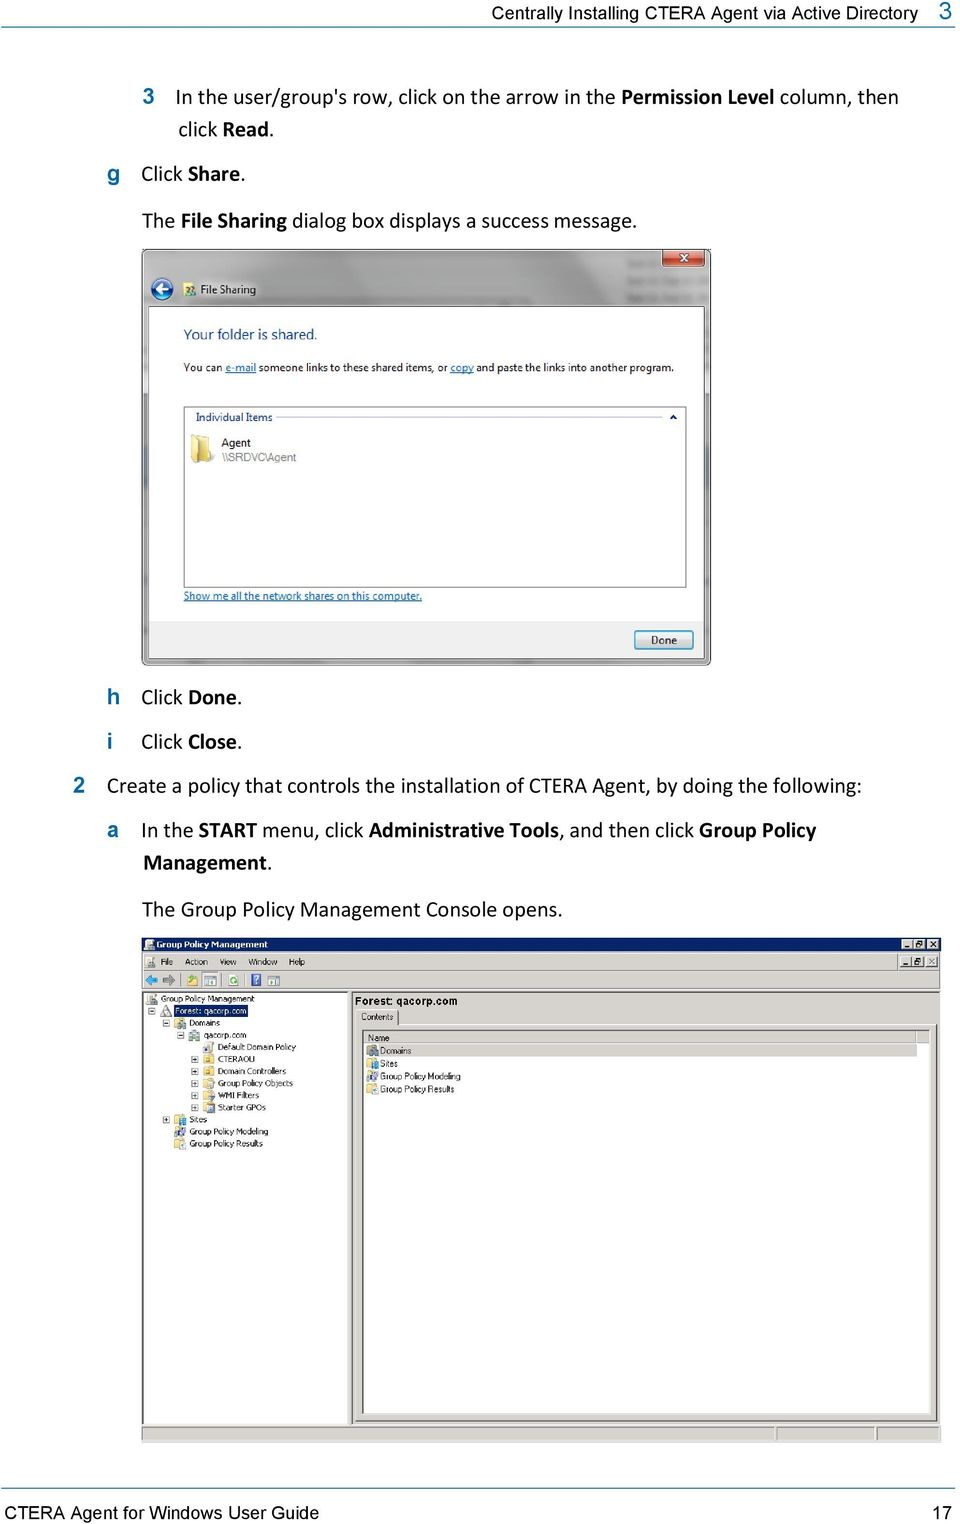 2 Create a policy that controls the installation of CTERA Agent, by doing the following: a In the START menu, click